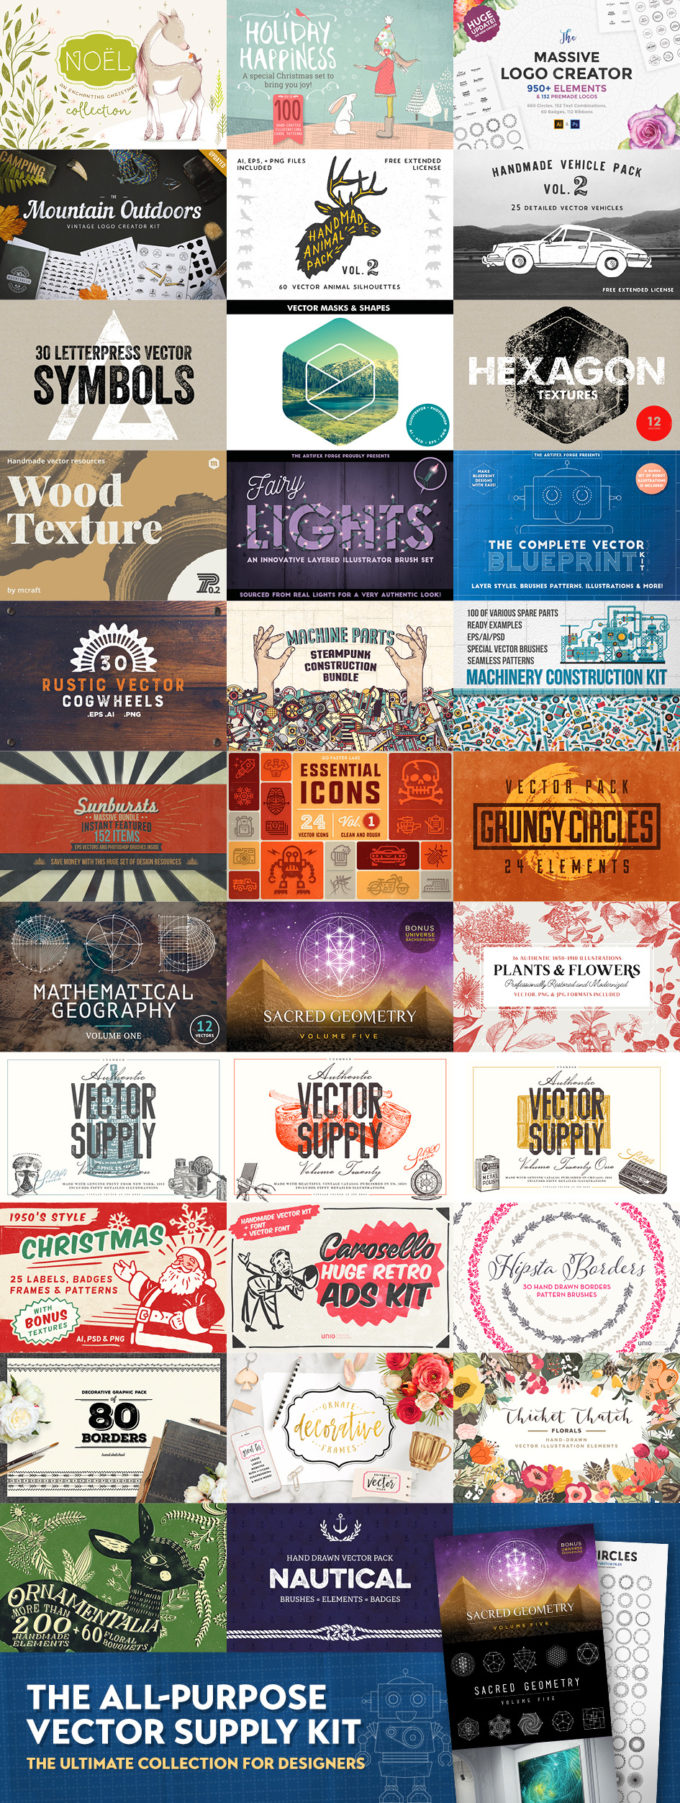 Want to make your holiday graphics really stand out? Check out seven fabulous resources to help you to create the most stunning blog graphics, greeting cards and family Christmas newsletters!